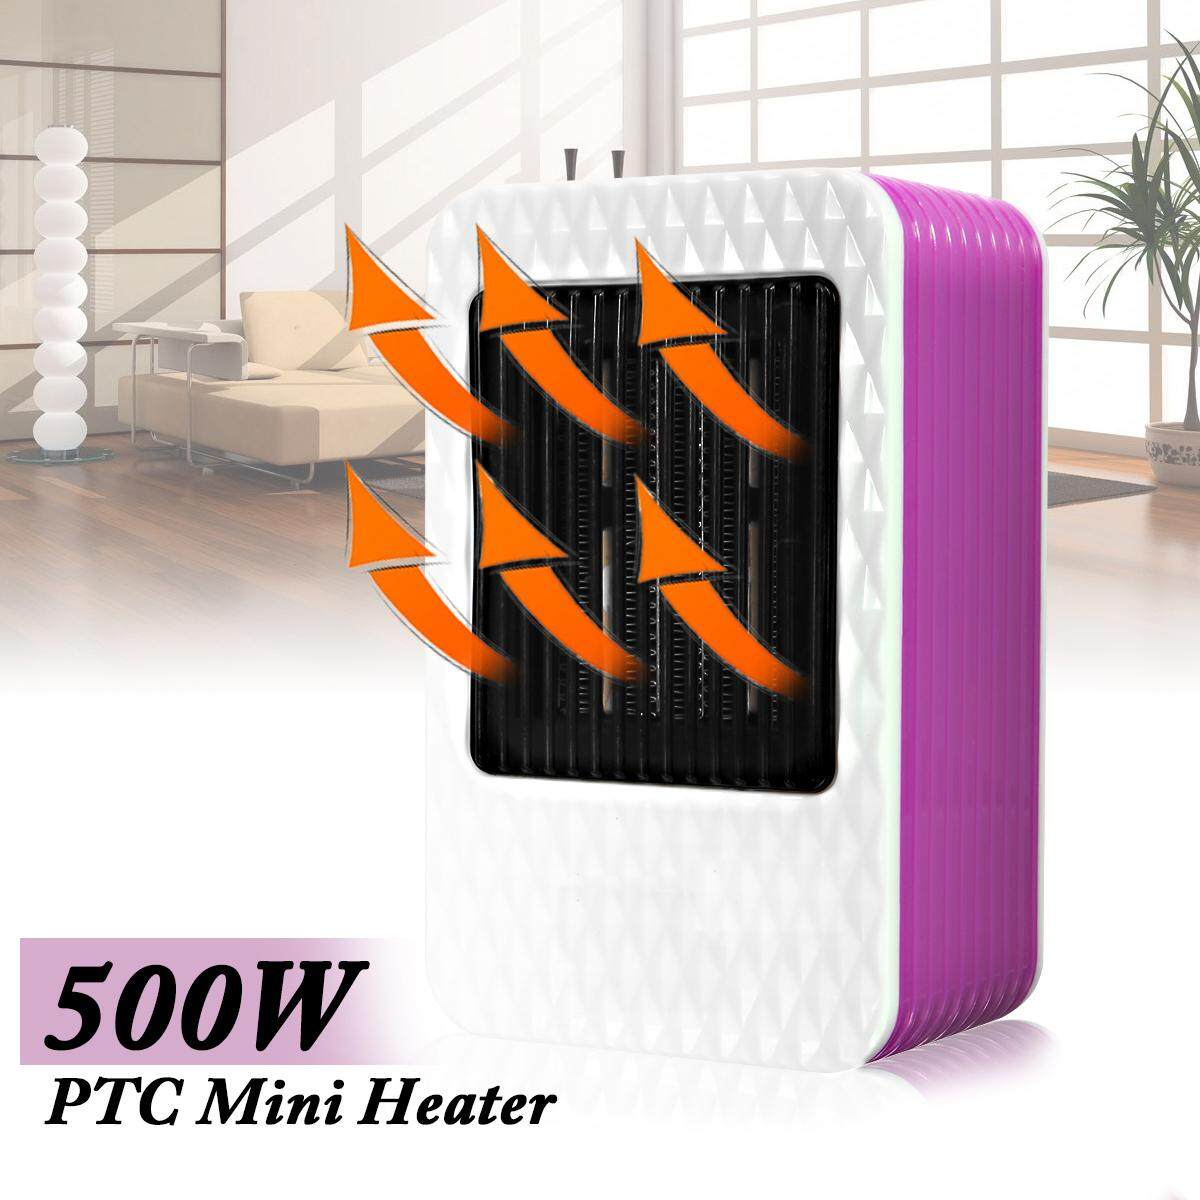 Shop Heaters Online Singapore Ariston Andris Lux 30 L 800 Watt Electric Water Heater 220v 500w Portable Ptc Fan Desktop Mini Air Conditioner Warm Convector